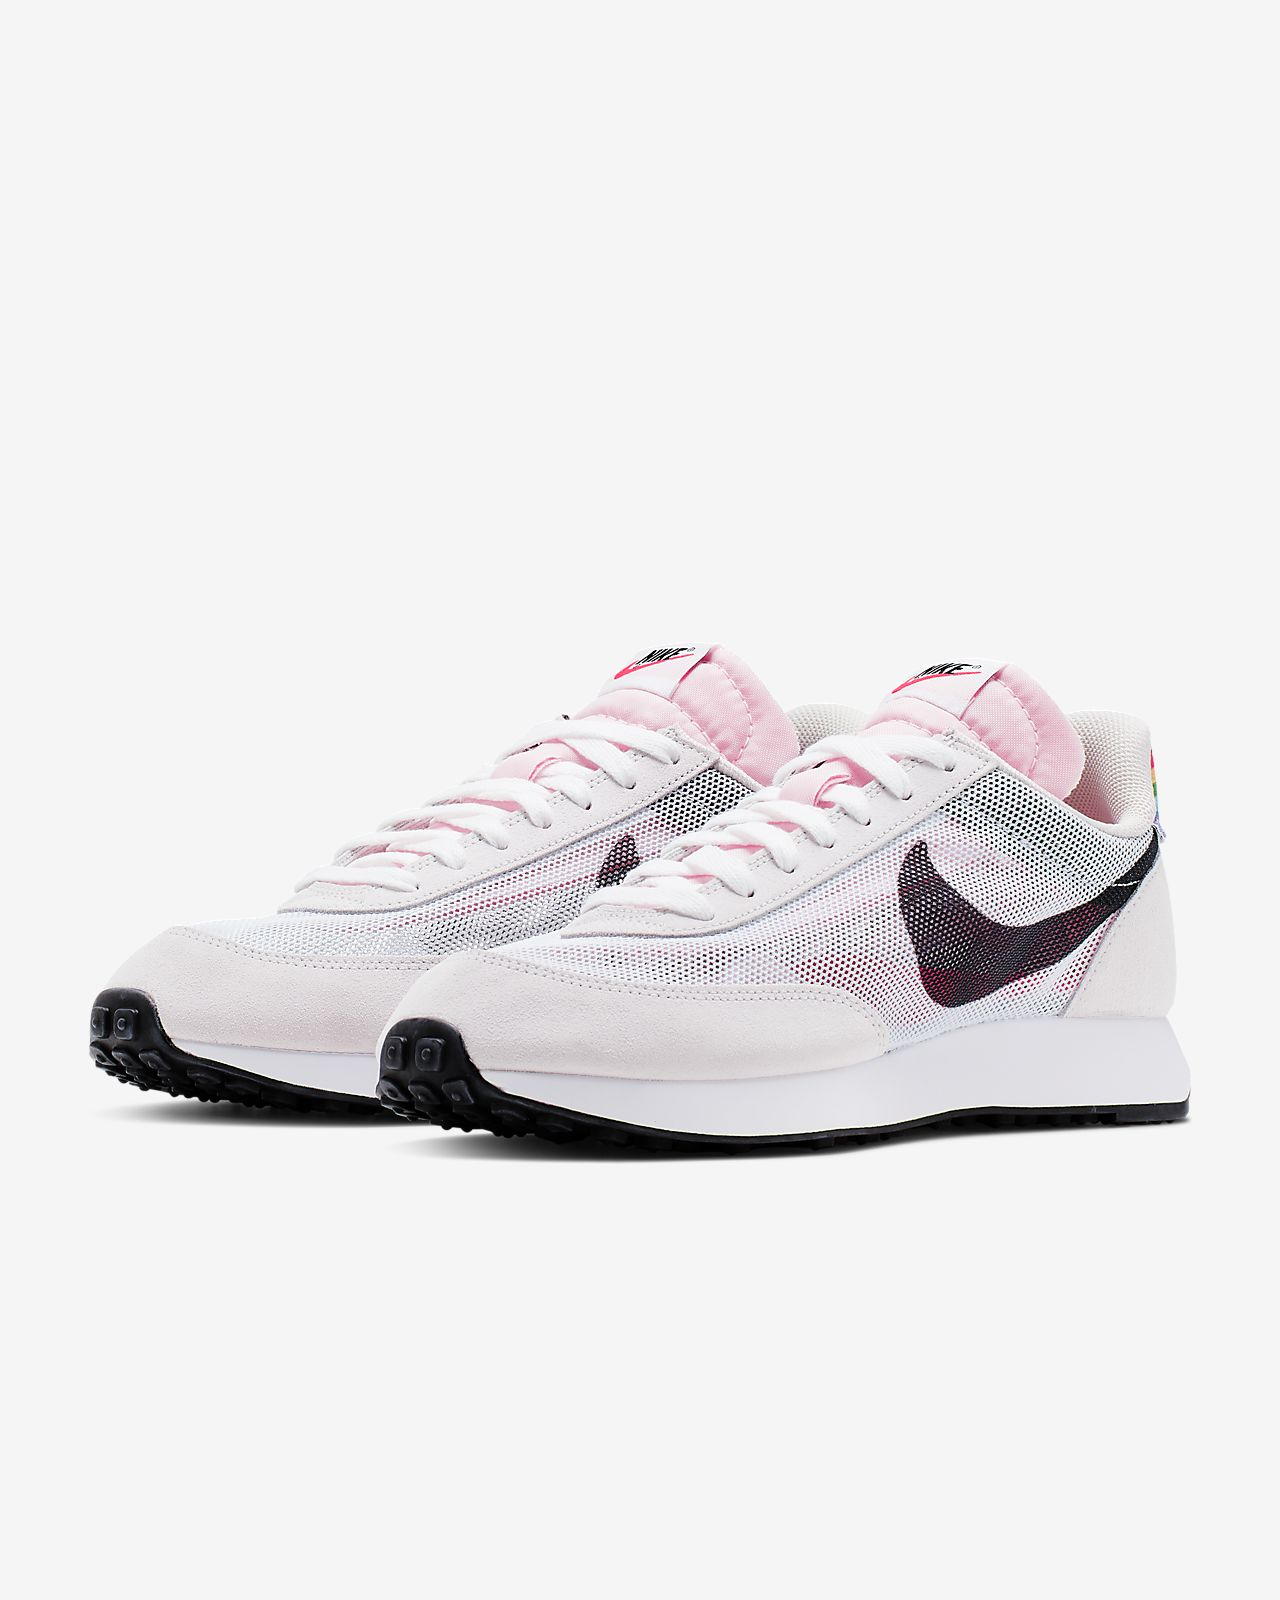 Nike Air Tailwind 79 BETRUE Shoe